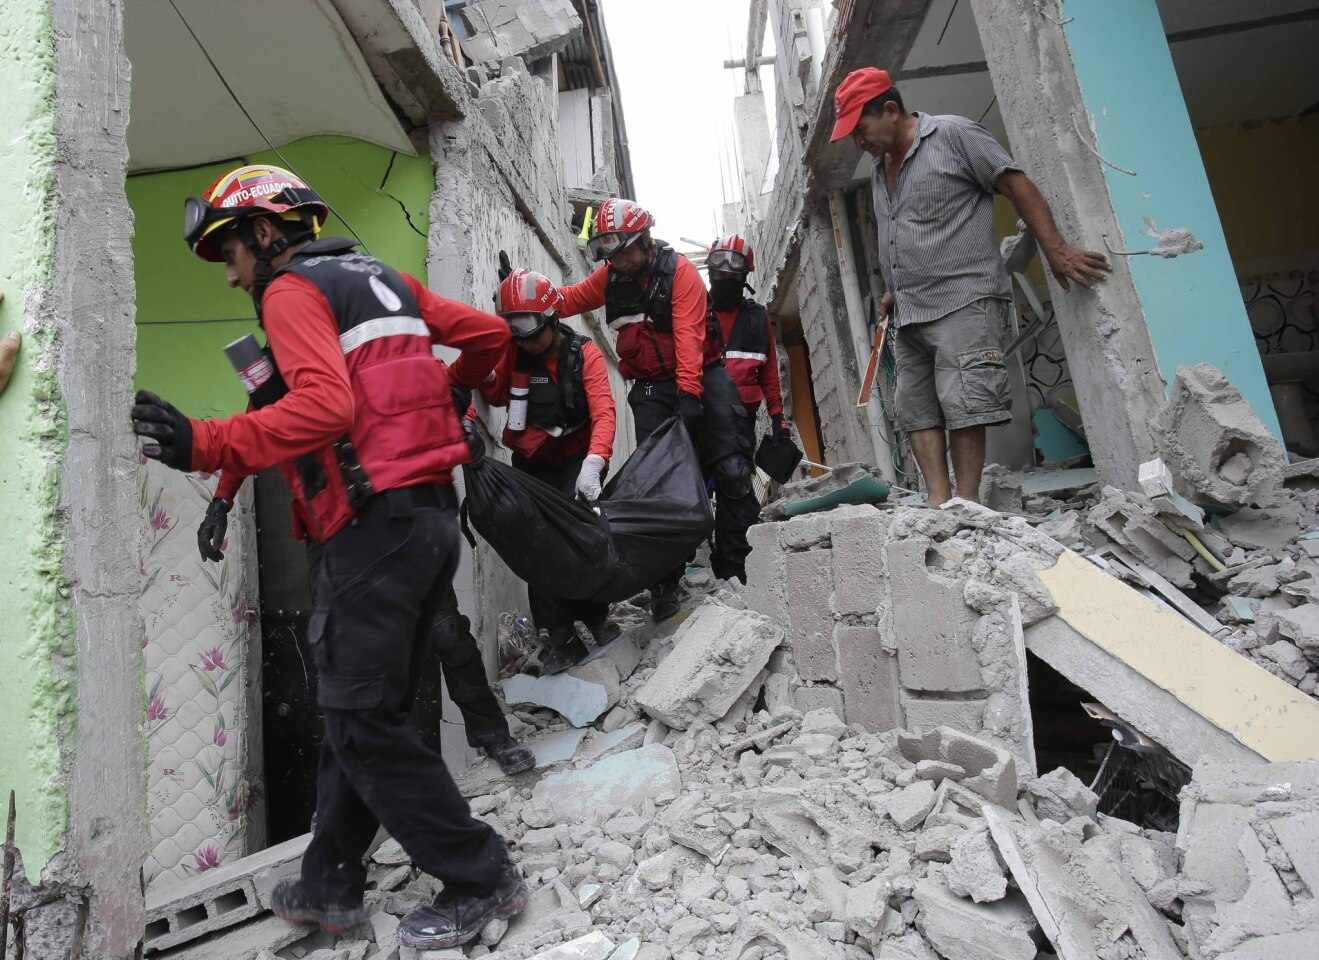 Firemen carry a body from a collapsed building in Pedernales, Ecuador. Rescuers pulled survivors from rubble Sunday after the strongest earthquake to hit Ecuador in decades flattened buildings and buckled highways along its Pacific coast.